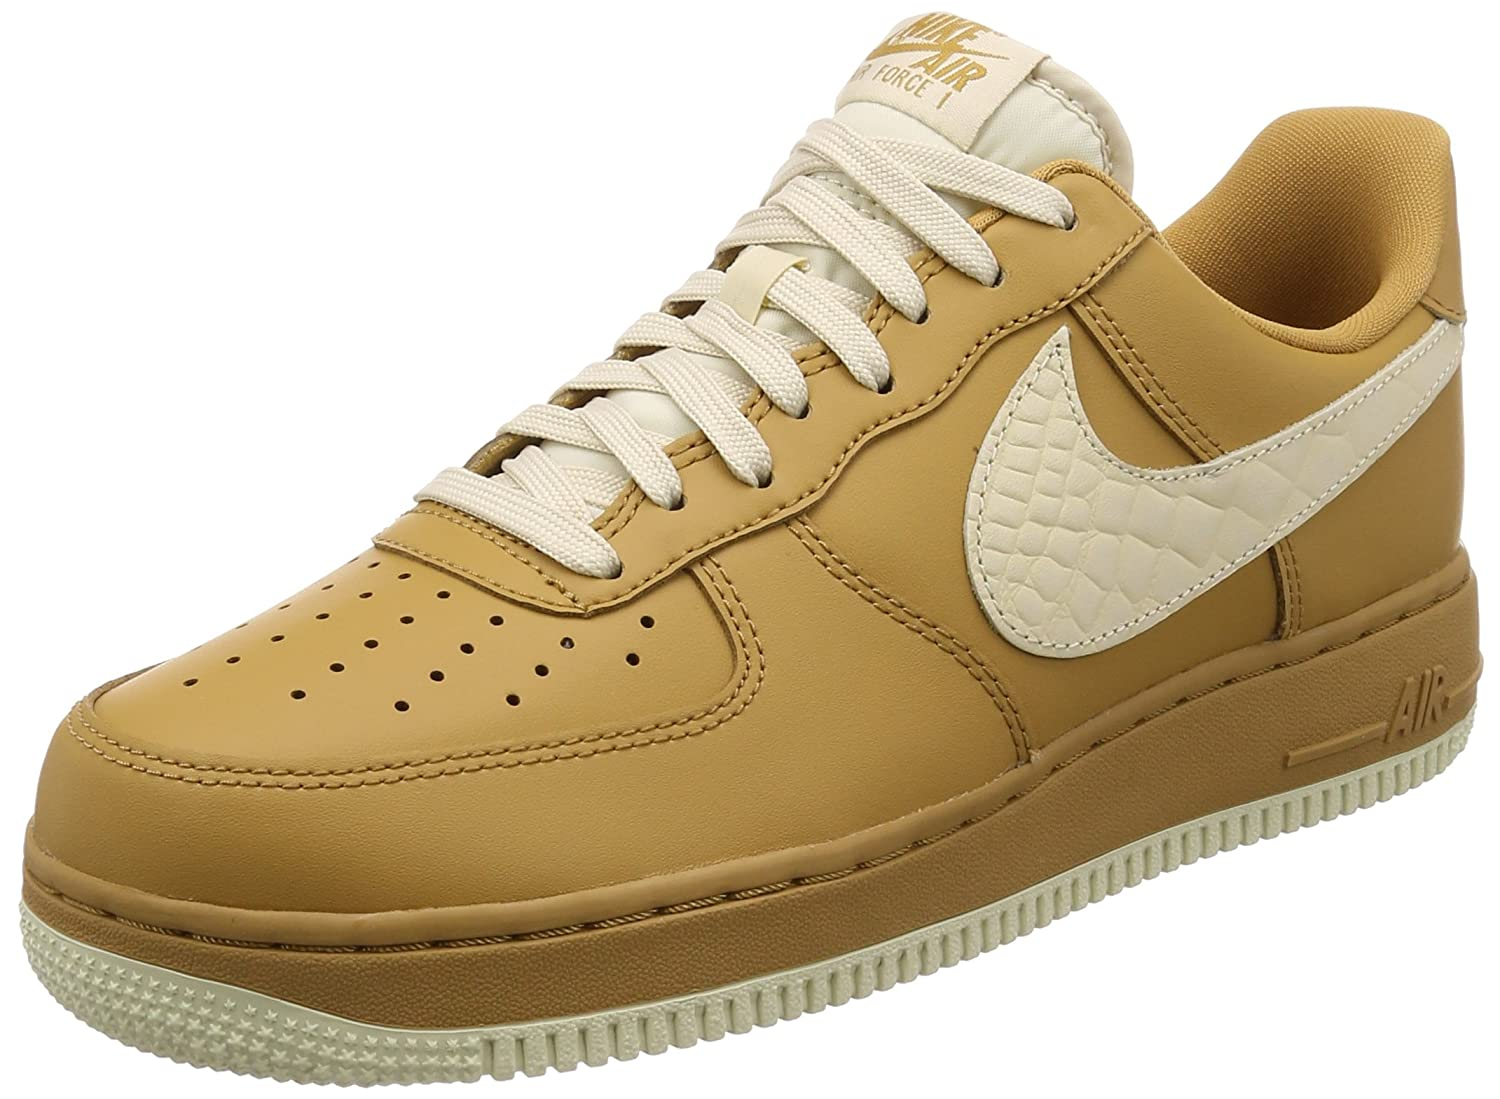 Nike Air Force 1 Low GS Lifestyle Sneakers 359317